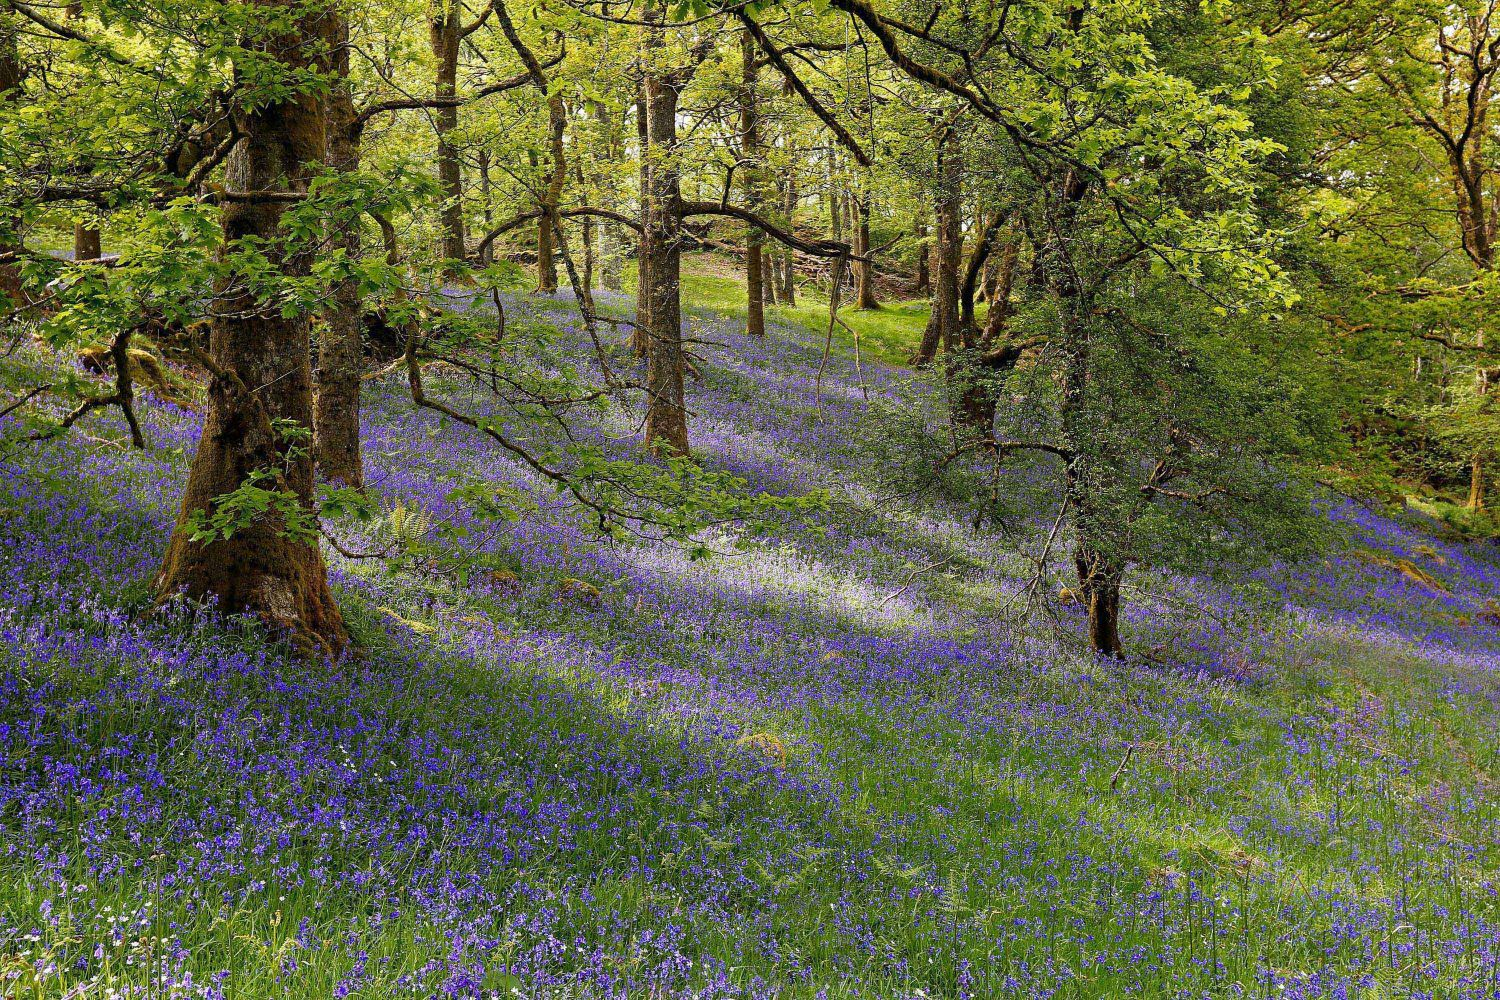 The bluebell woods at Brock Mill